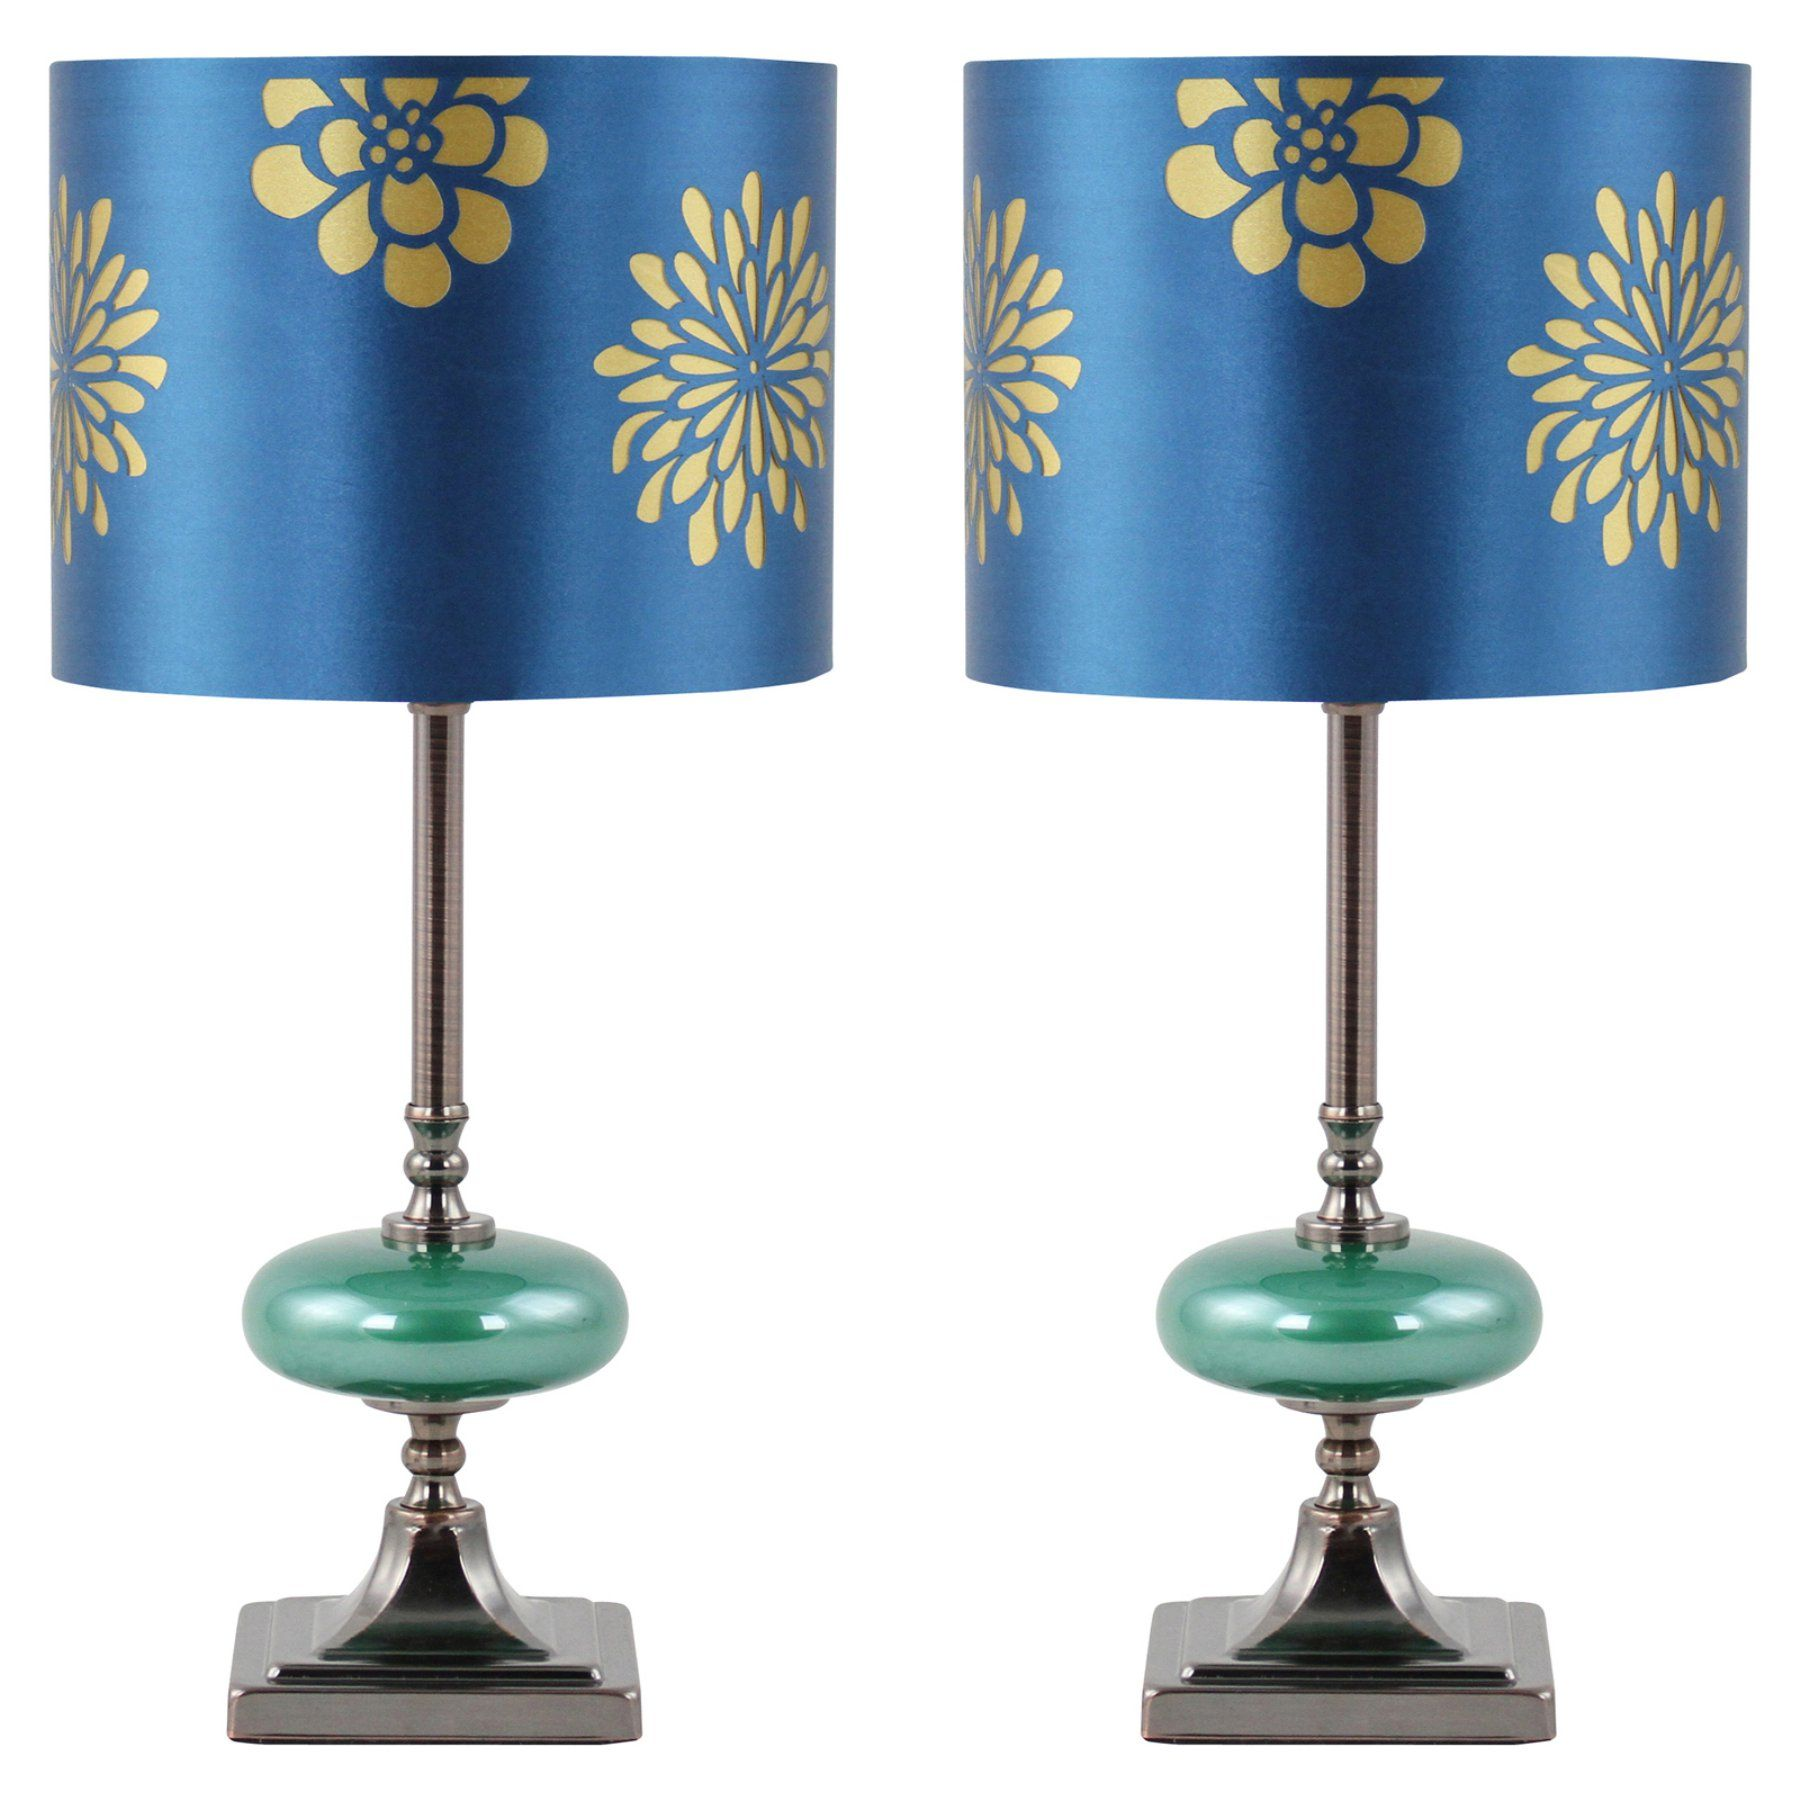 Aspire Home Accents Braxton Table Lamp Set   40113